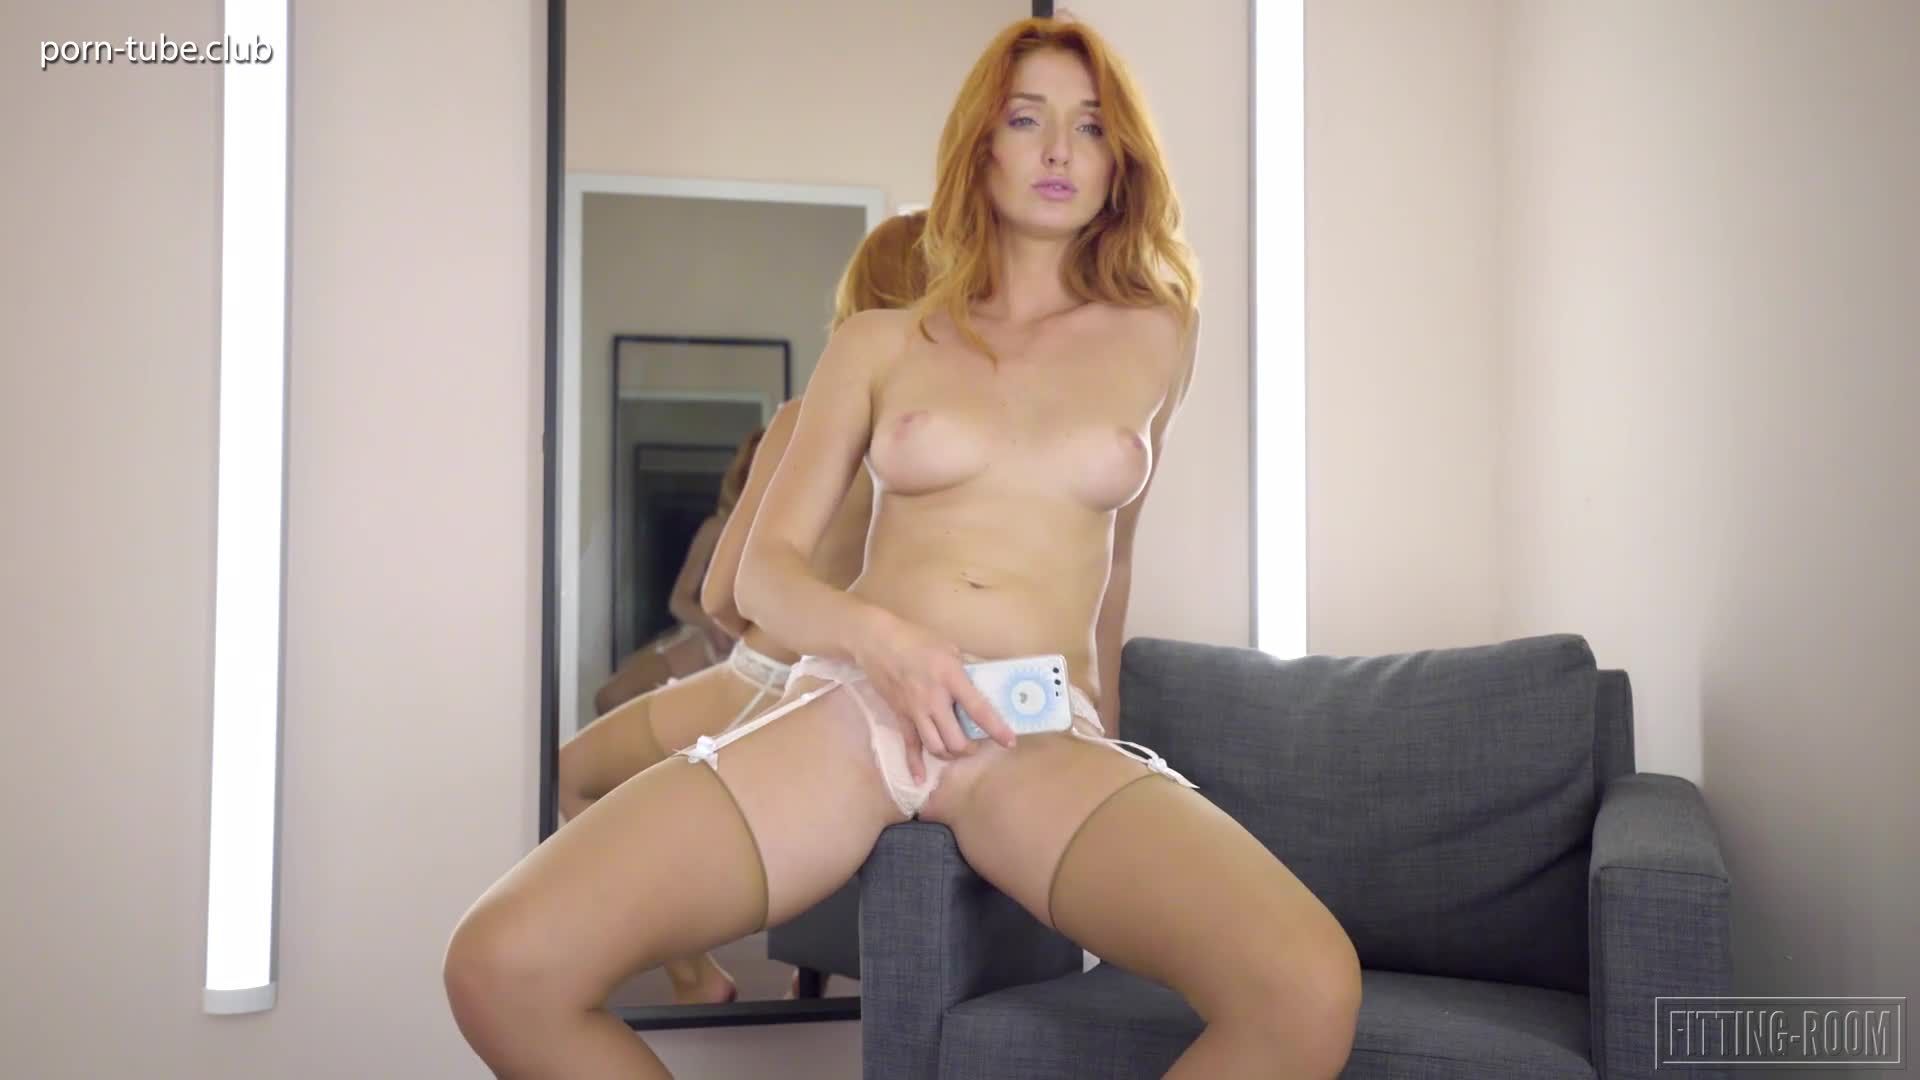 Fitting-Room 20.04.24 Red Fox Anal Plugged Booty Redhead